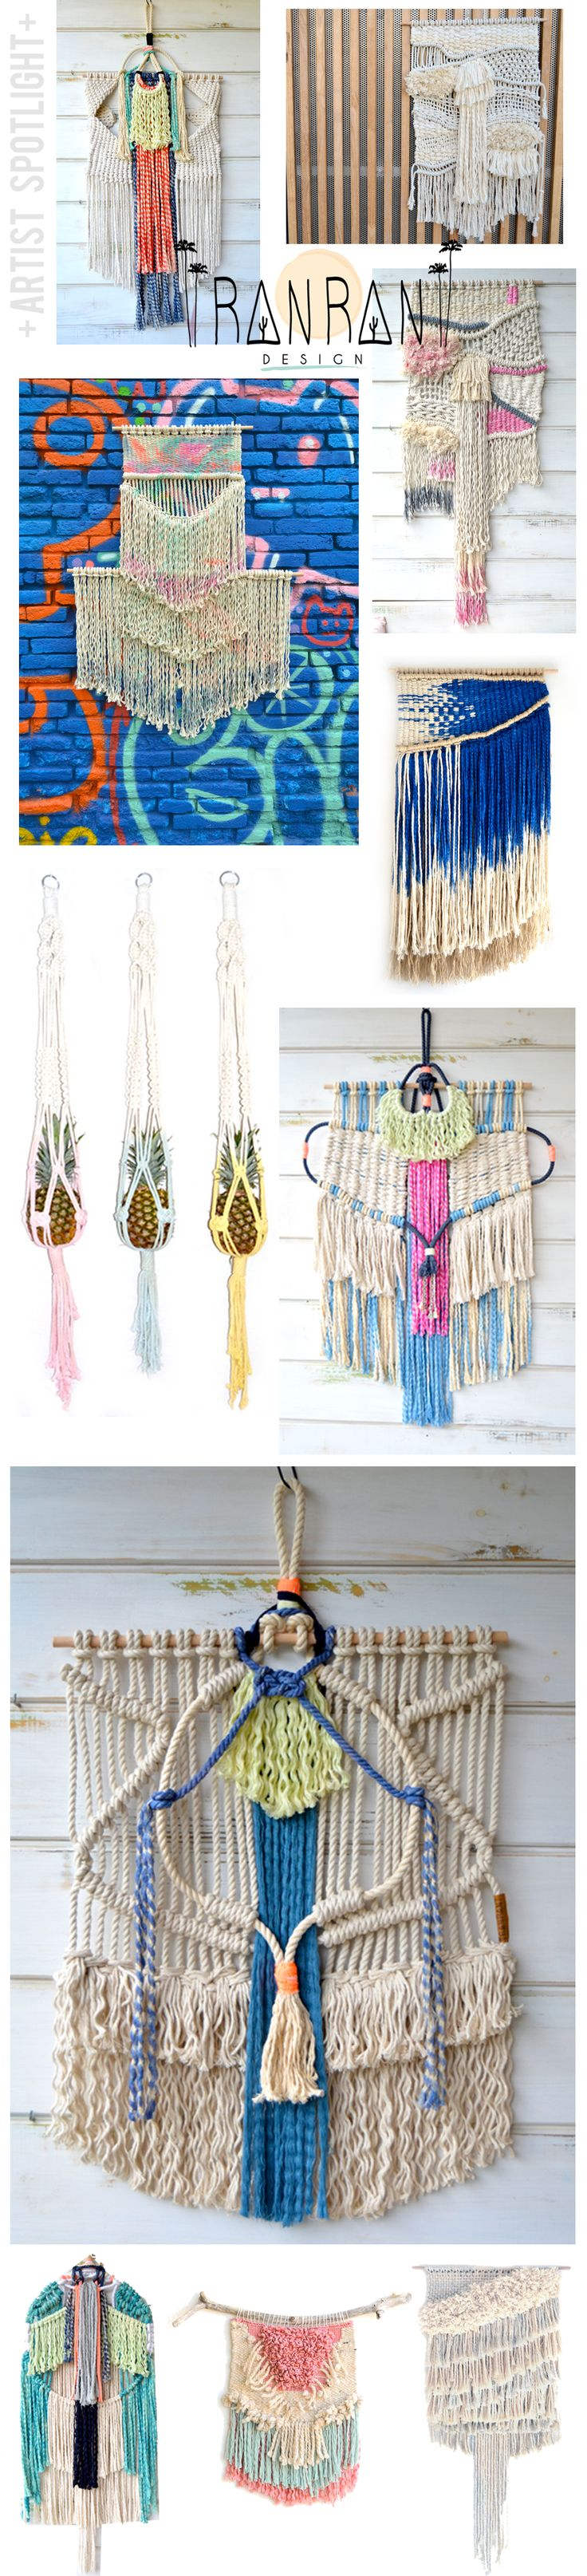 157 best Yarn decor images on Pinterest | Craft, Ornaments and Dream ...